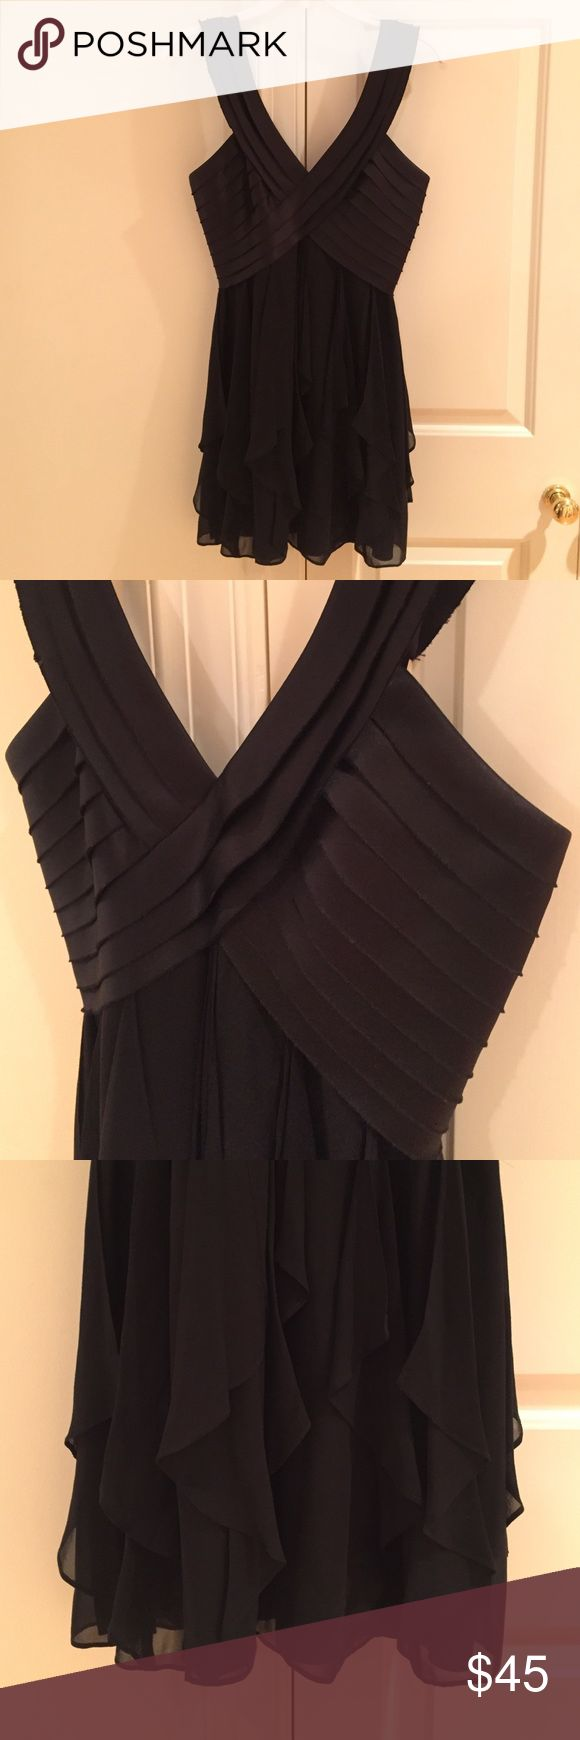 BCBG MAX AZRIA Petites Formal Dress Black formal dress with crossover top and flowy skirt. Worn once. Moves beautifully, great for formal occasions! BCBGMaxAzria Dresses Mini